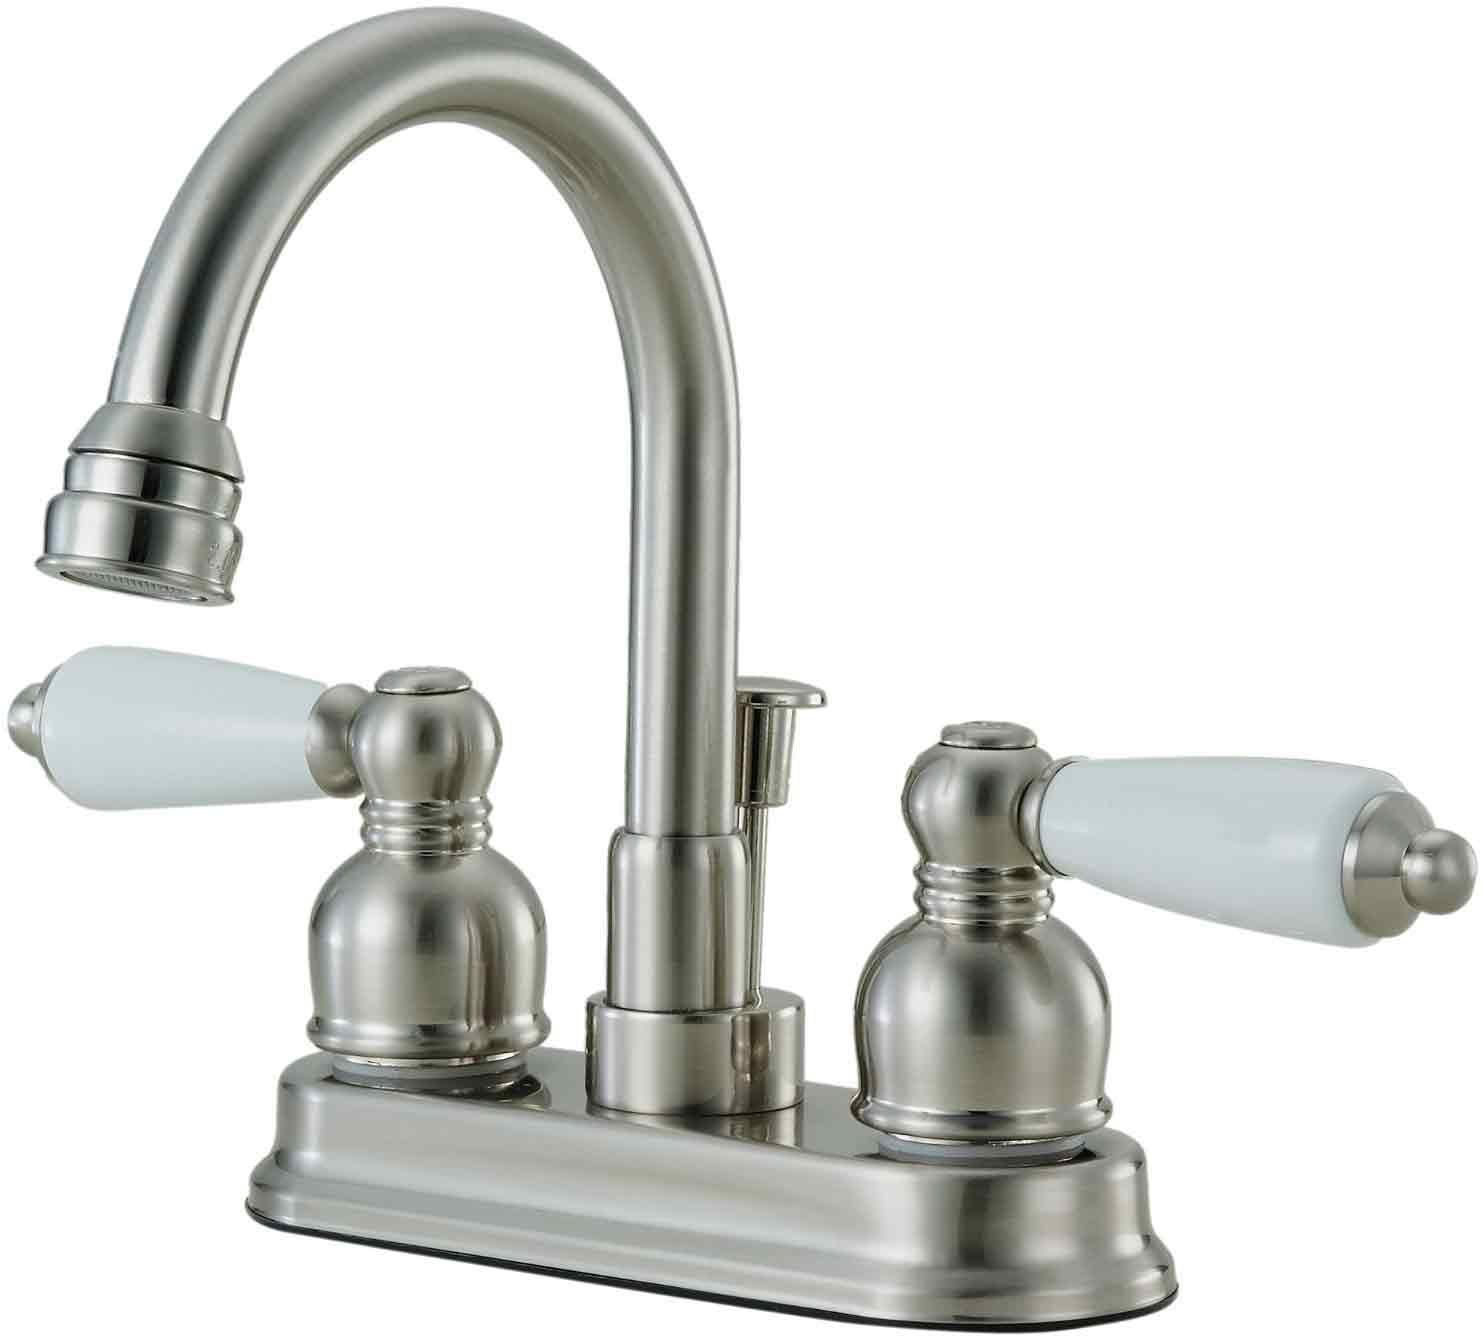 12-2832 Satin Nickel Lavatory/Bar Faucet